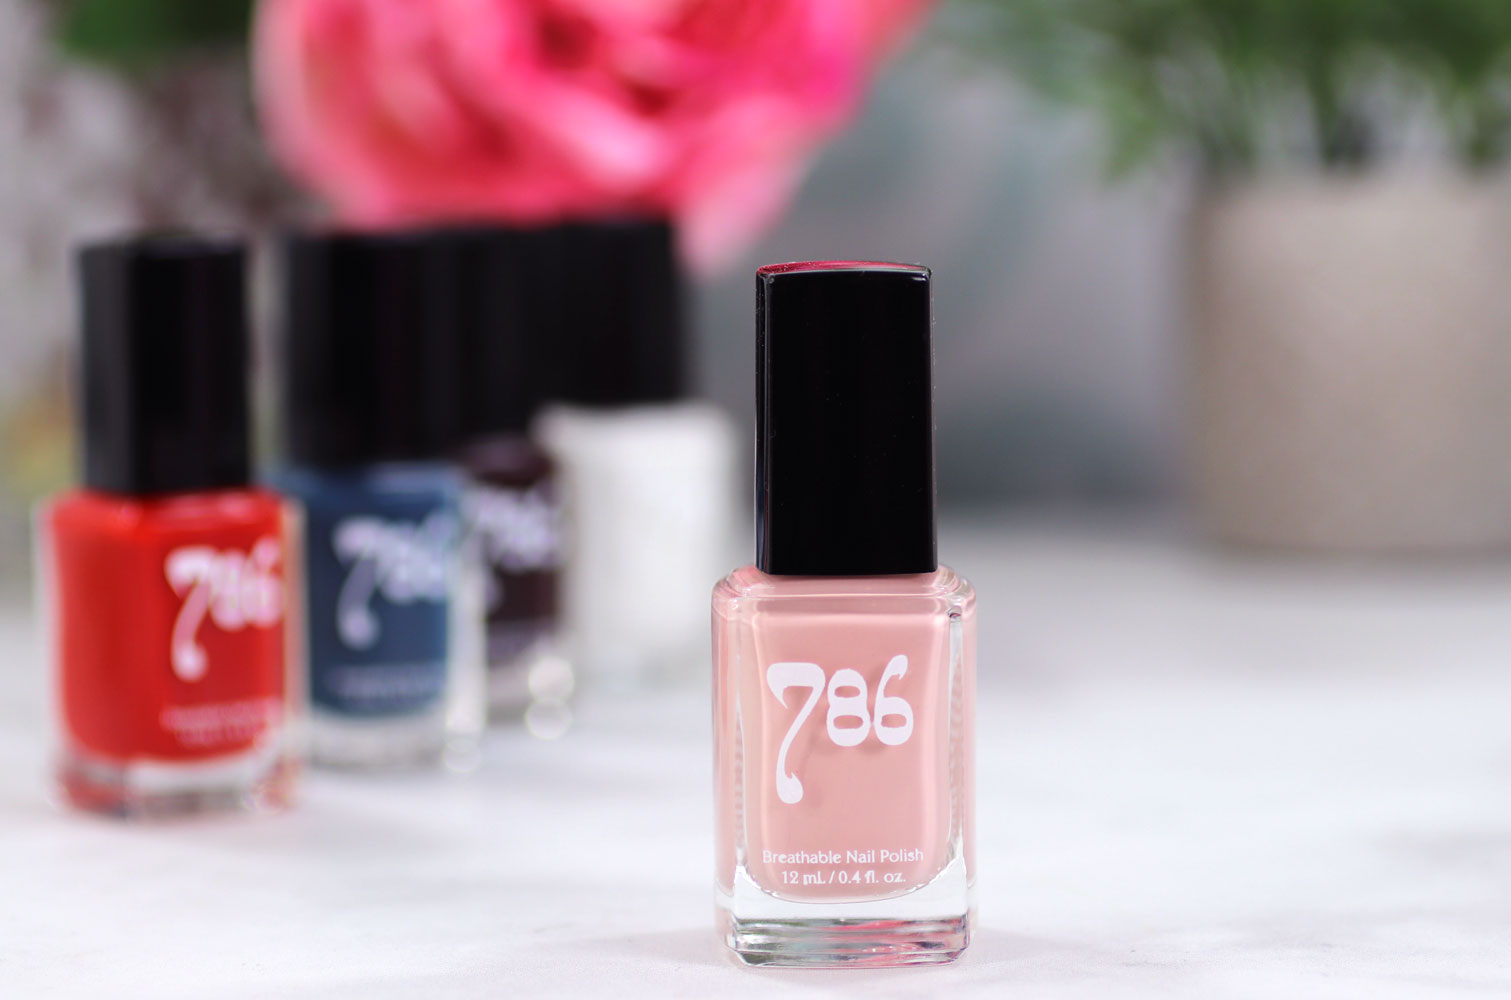 786 Cosmetics Breathable Cruelty Free and Vegan Nail Polish Review and Swatches - Dakar